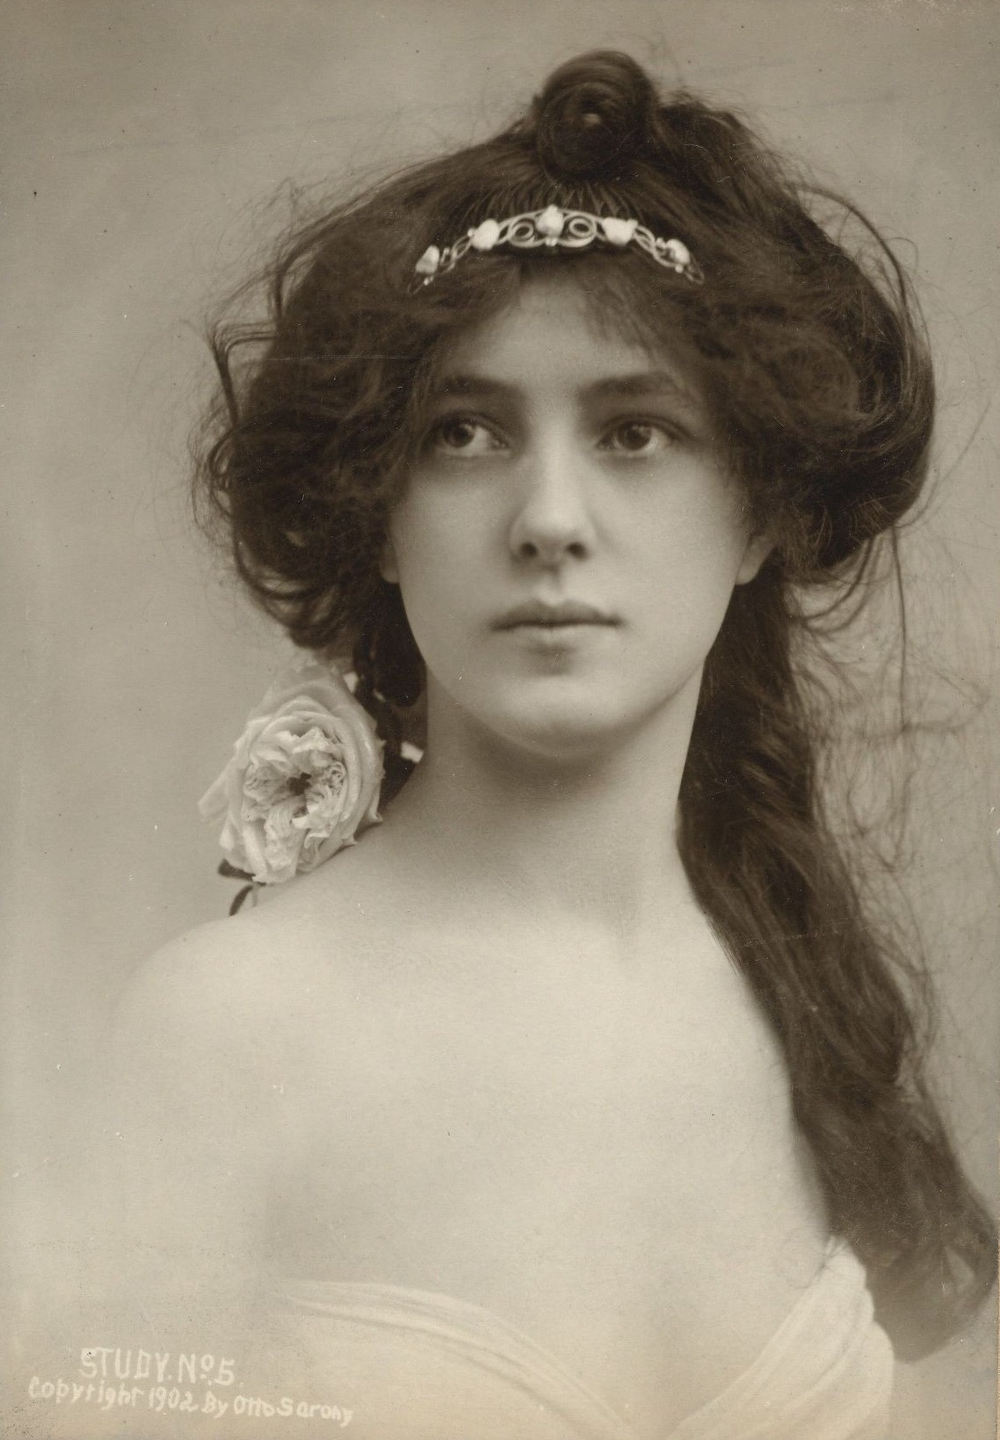 Edwardian beauty, Evelyn Nesbit